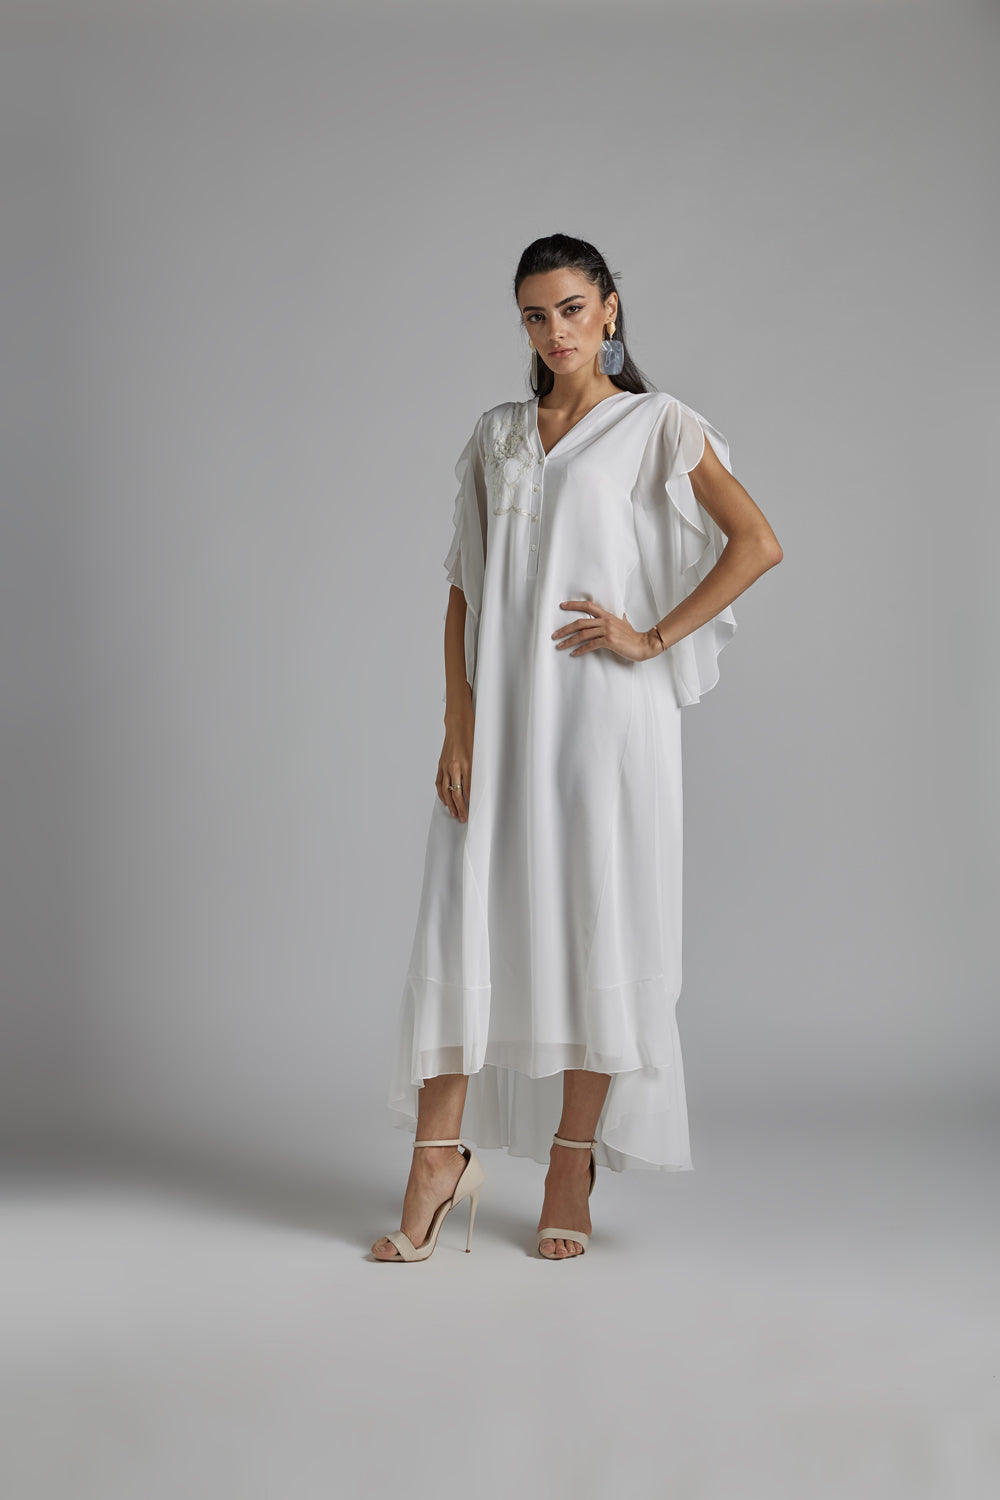 Silk Chiffon Off White Dress - Dulce Sueno